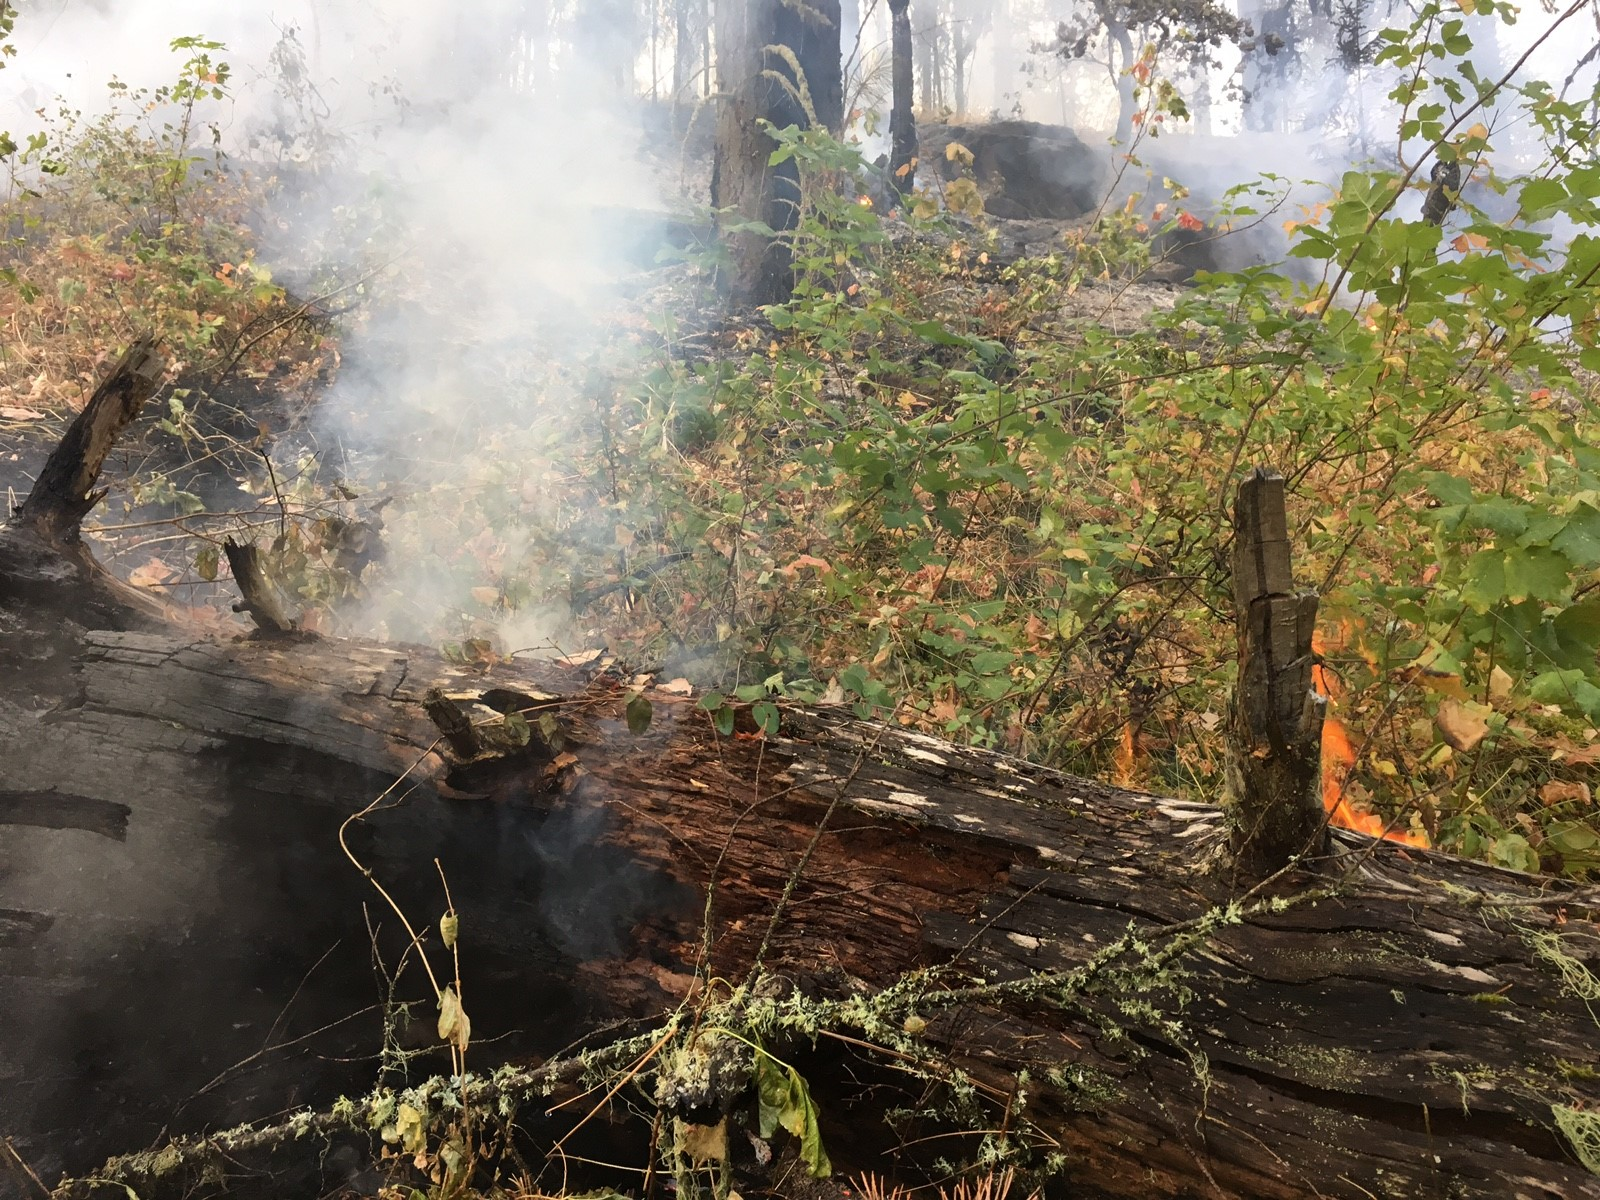 Of The Six Wildfires Located In The Past 12 Hours Five Of Them Are 100 Percent Lined And 100 Percent Mopped Up All Five Were Stopped At Less Than One Acre